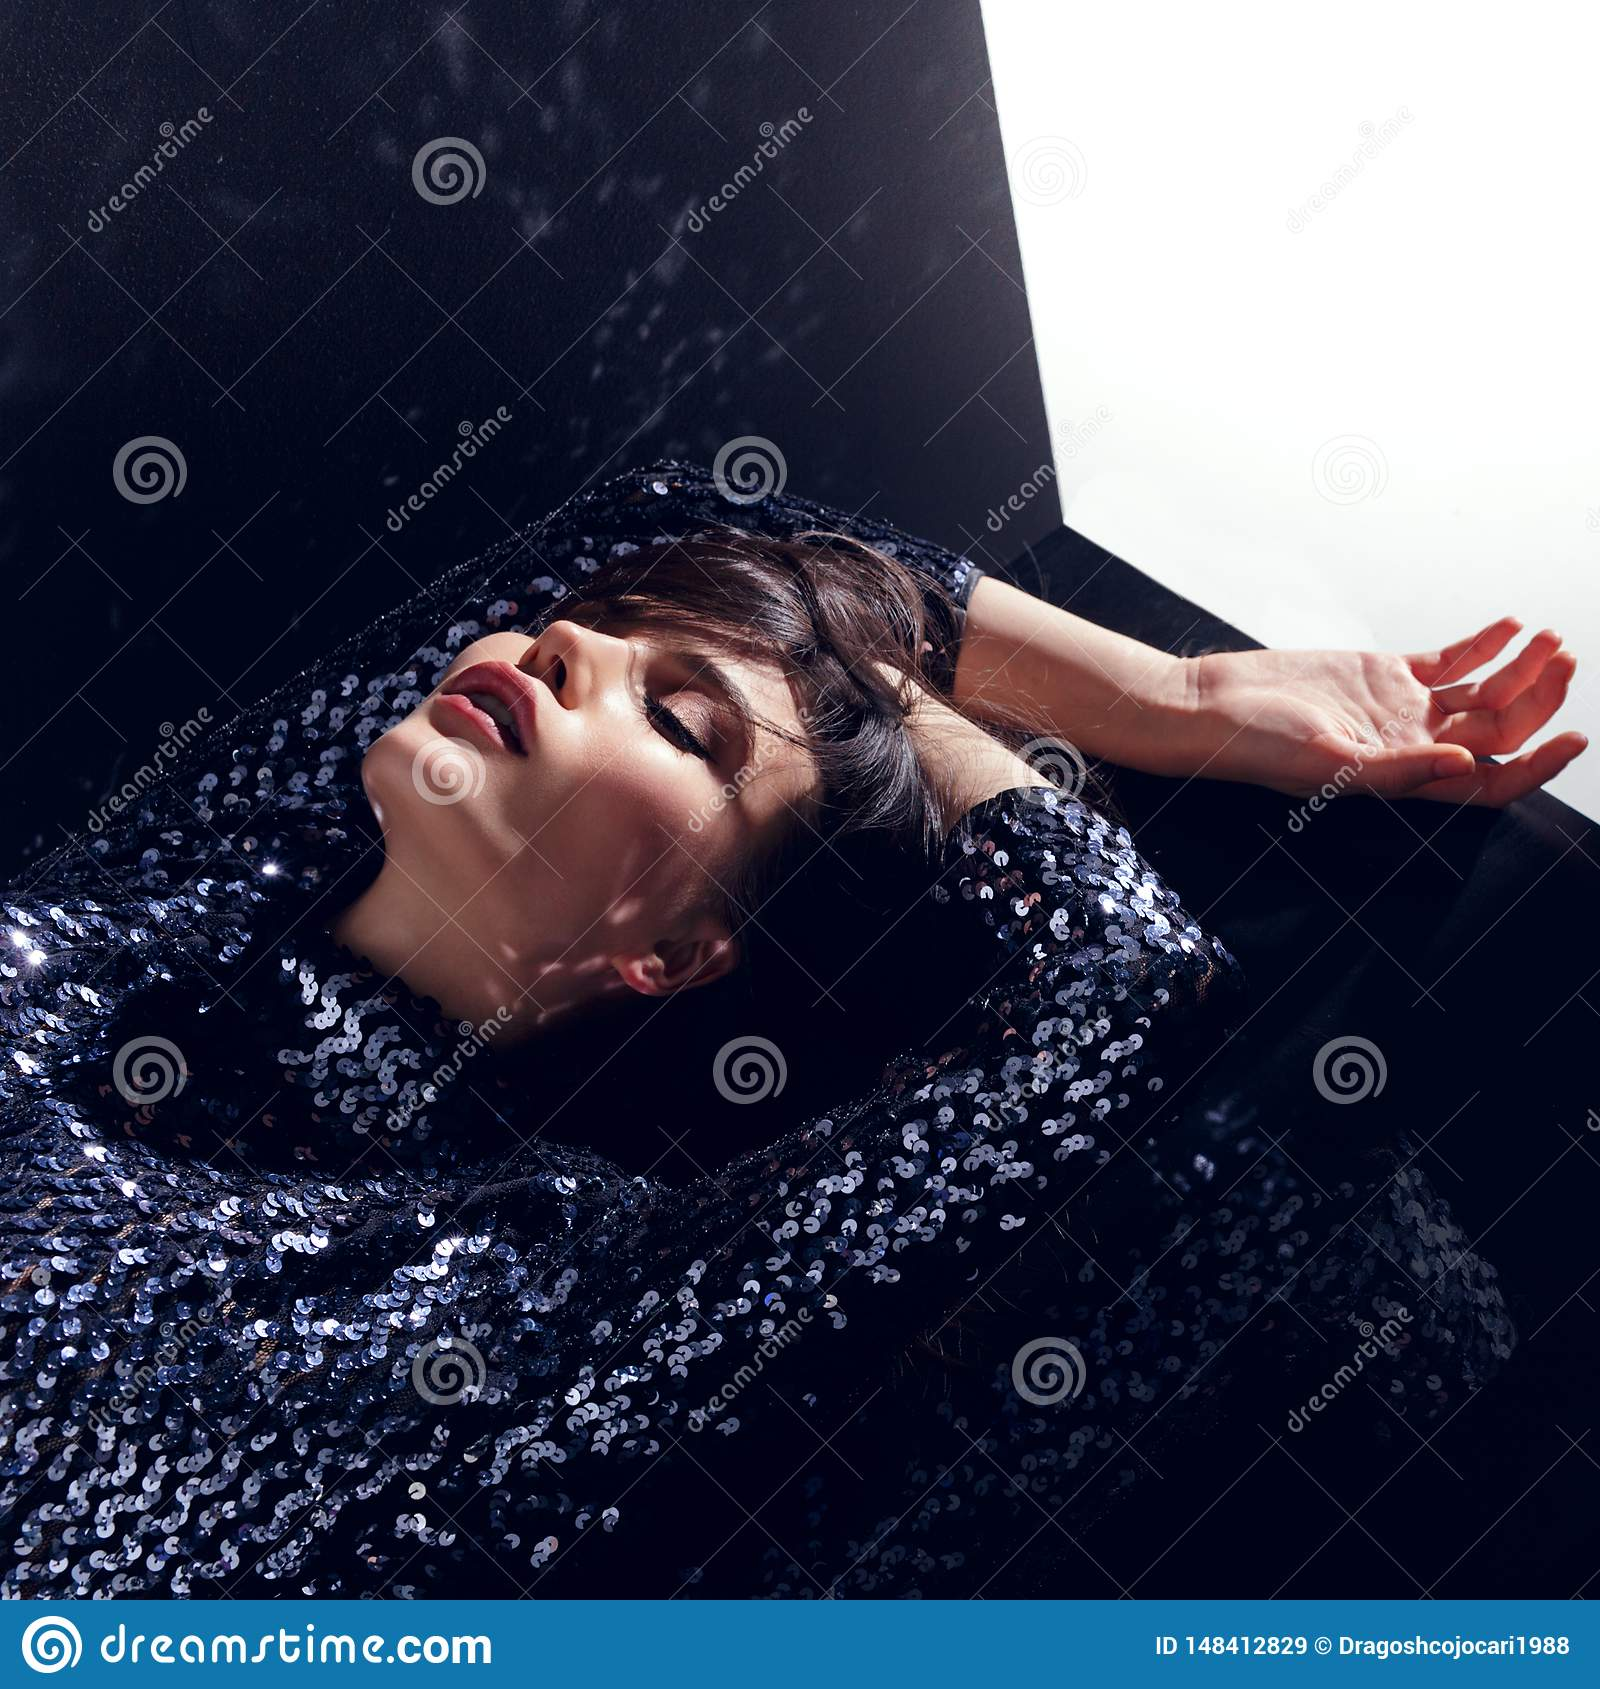 Fashion concept, gorgeous model, with closed eyes in a sequins dress posing in studio, isolated on a black background.